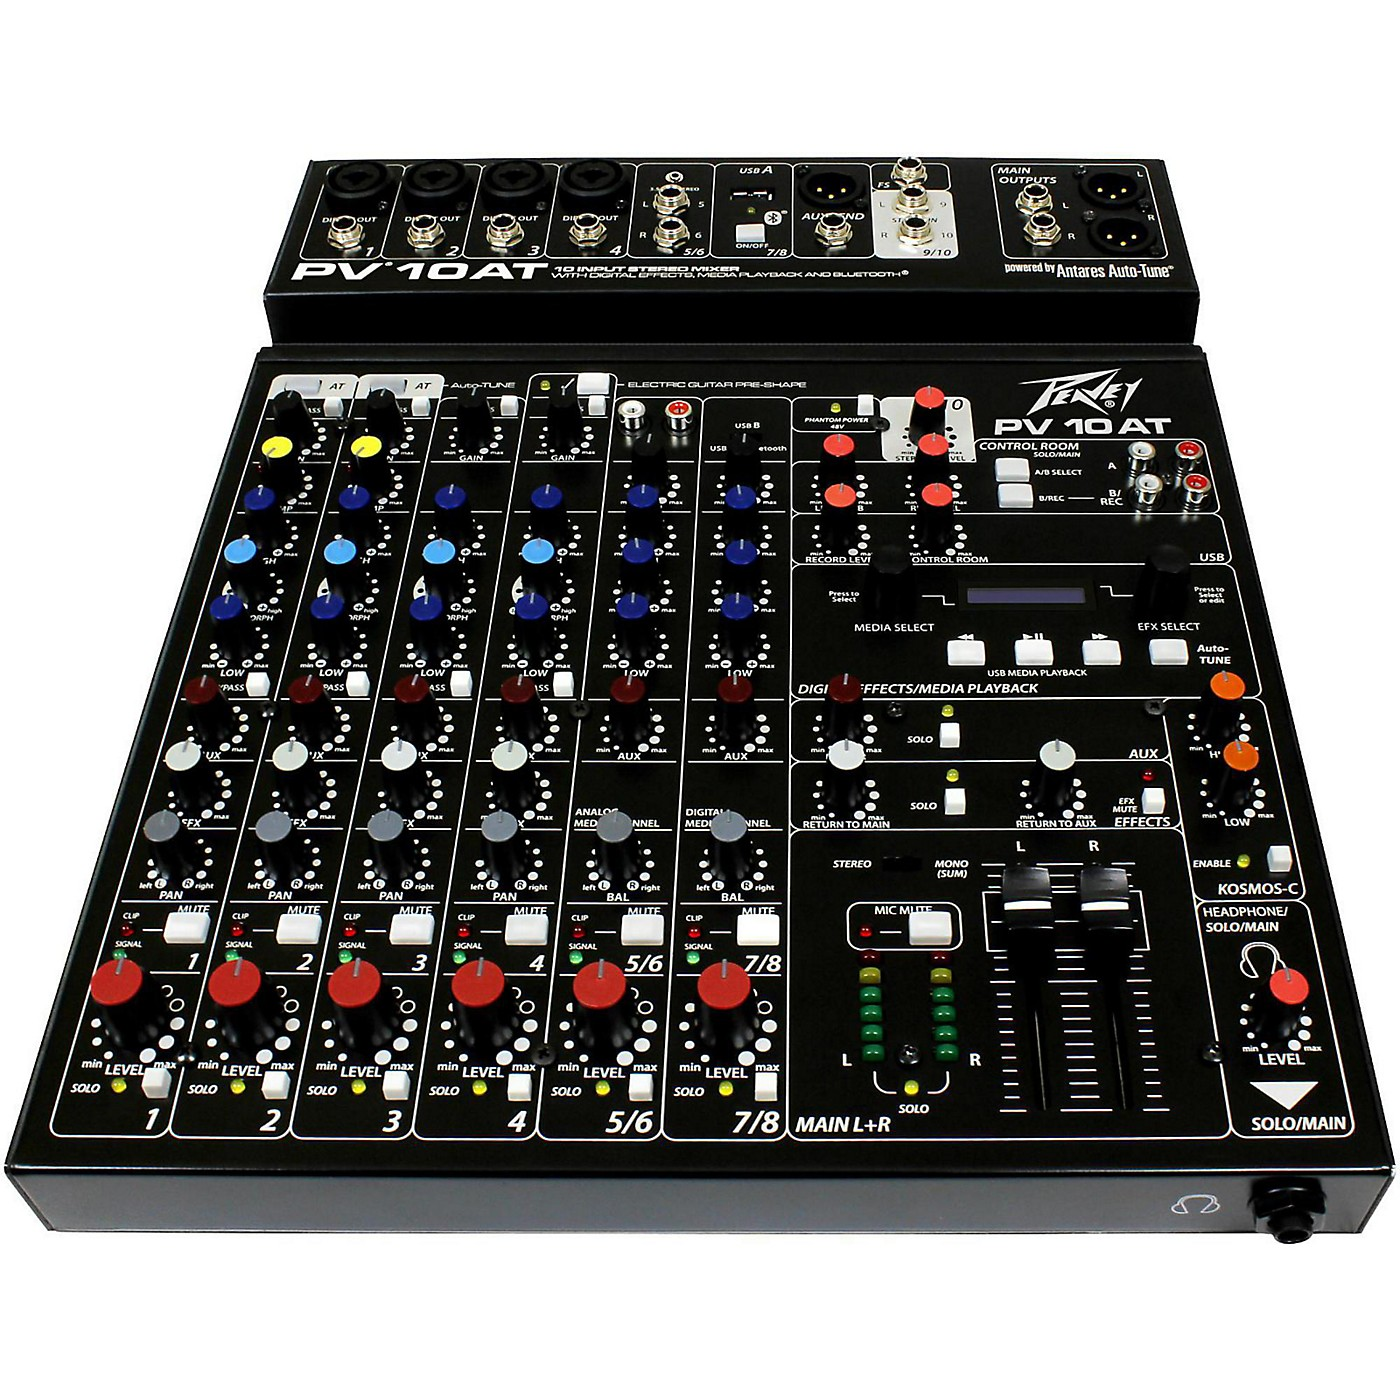 Peavey PV 10 AT Mixer with Autotune thumbnail